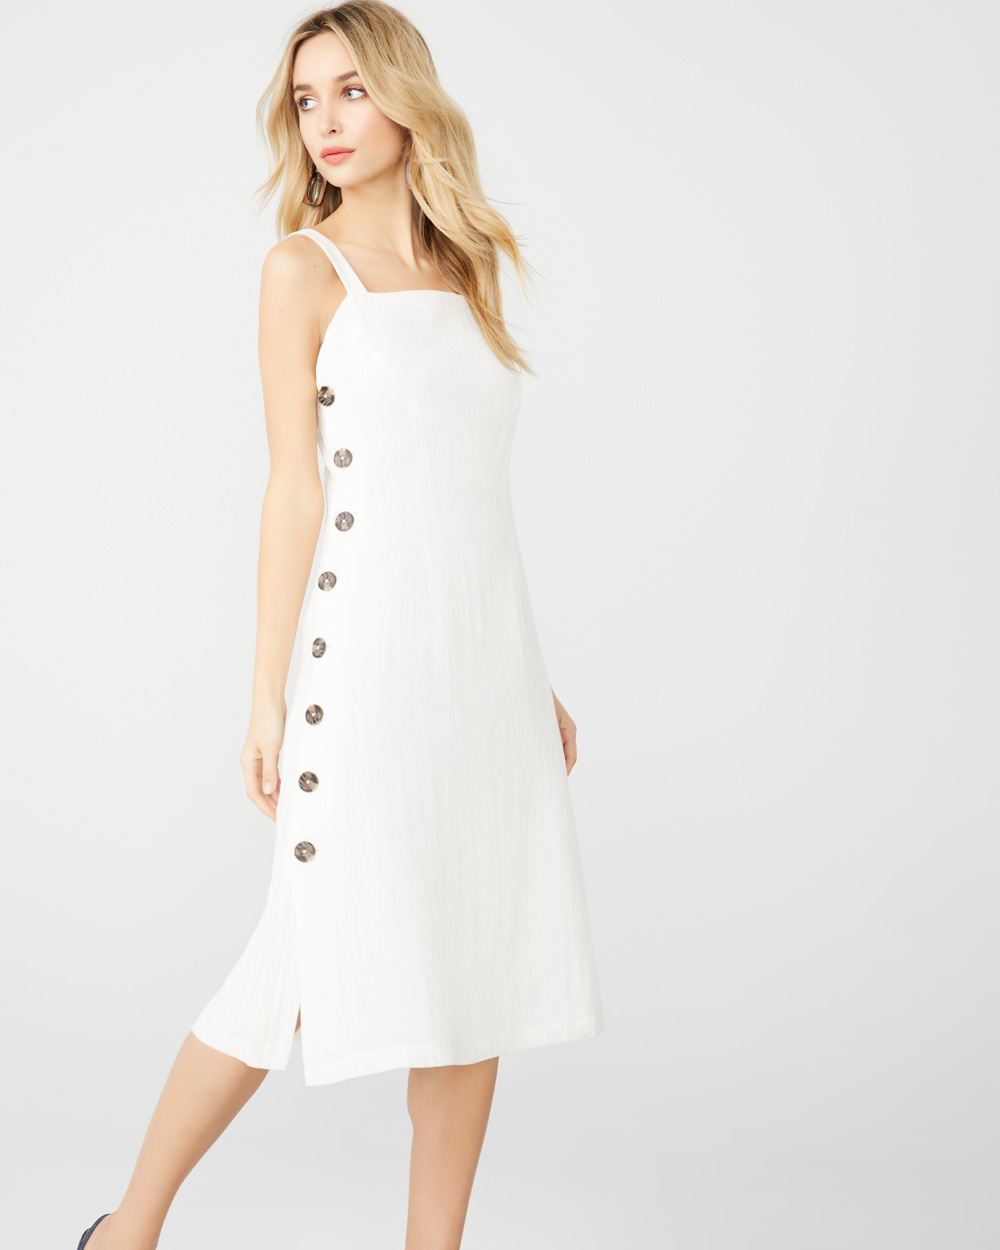 6a08a516b62 White Midi dress with buttons | RW&CO.